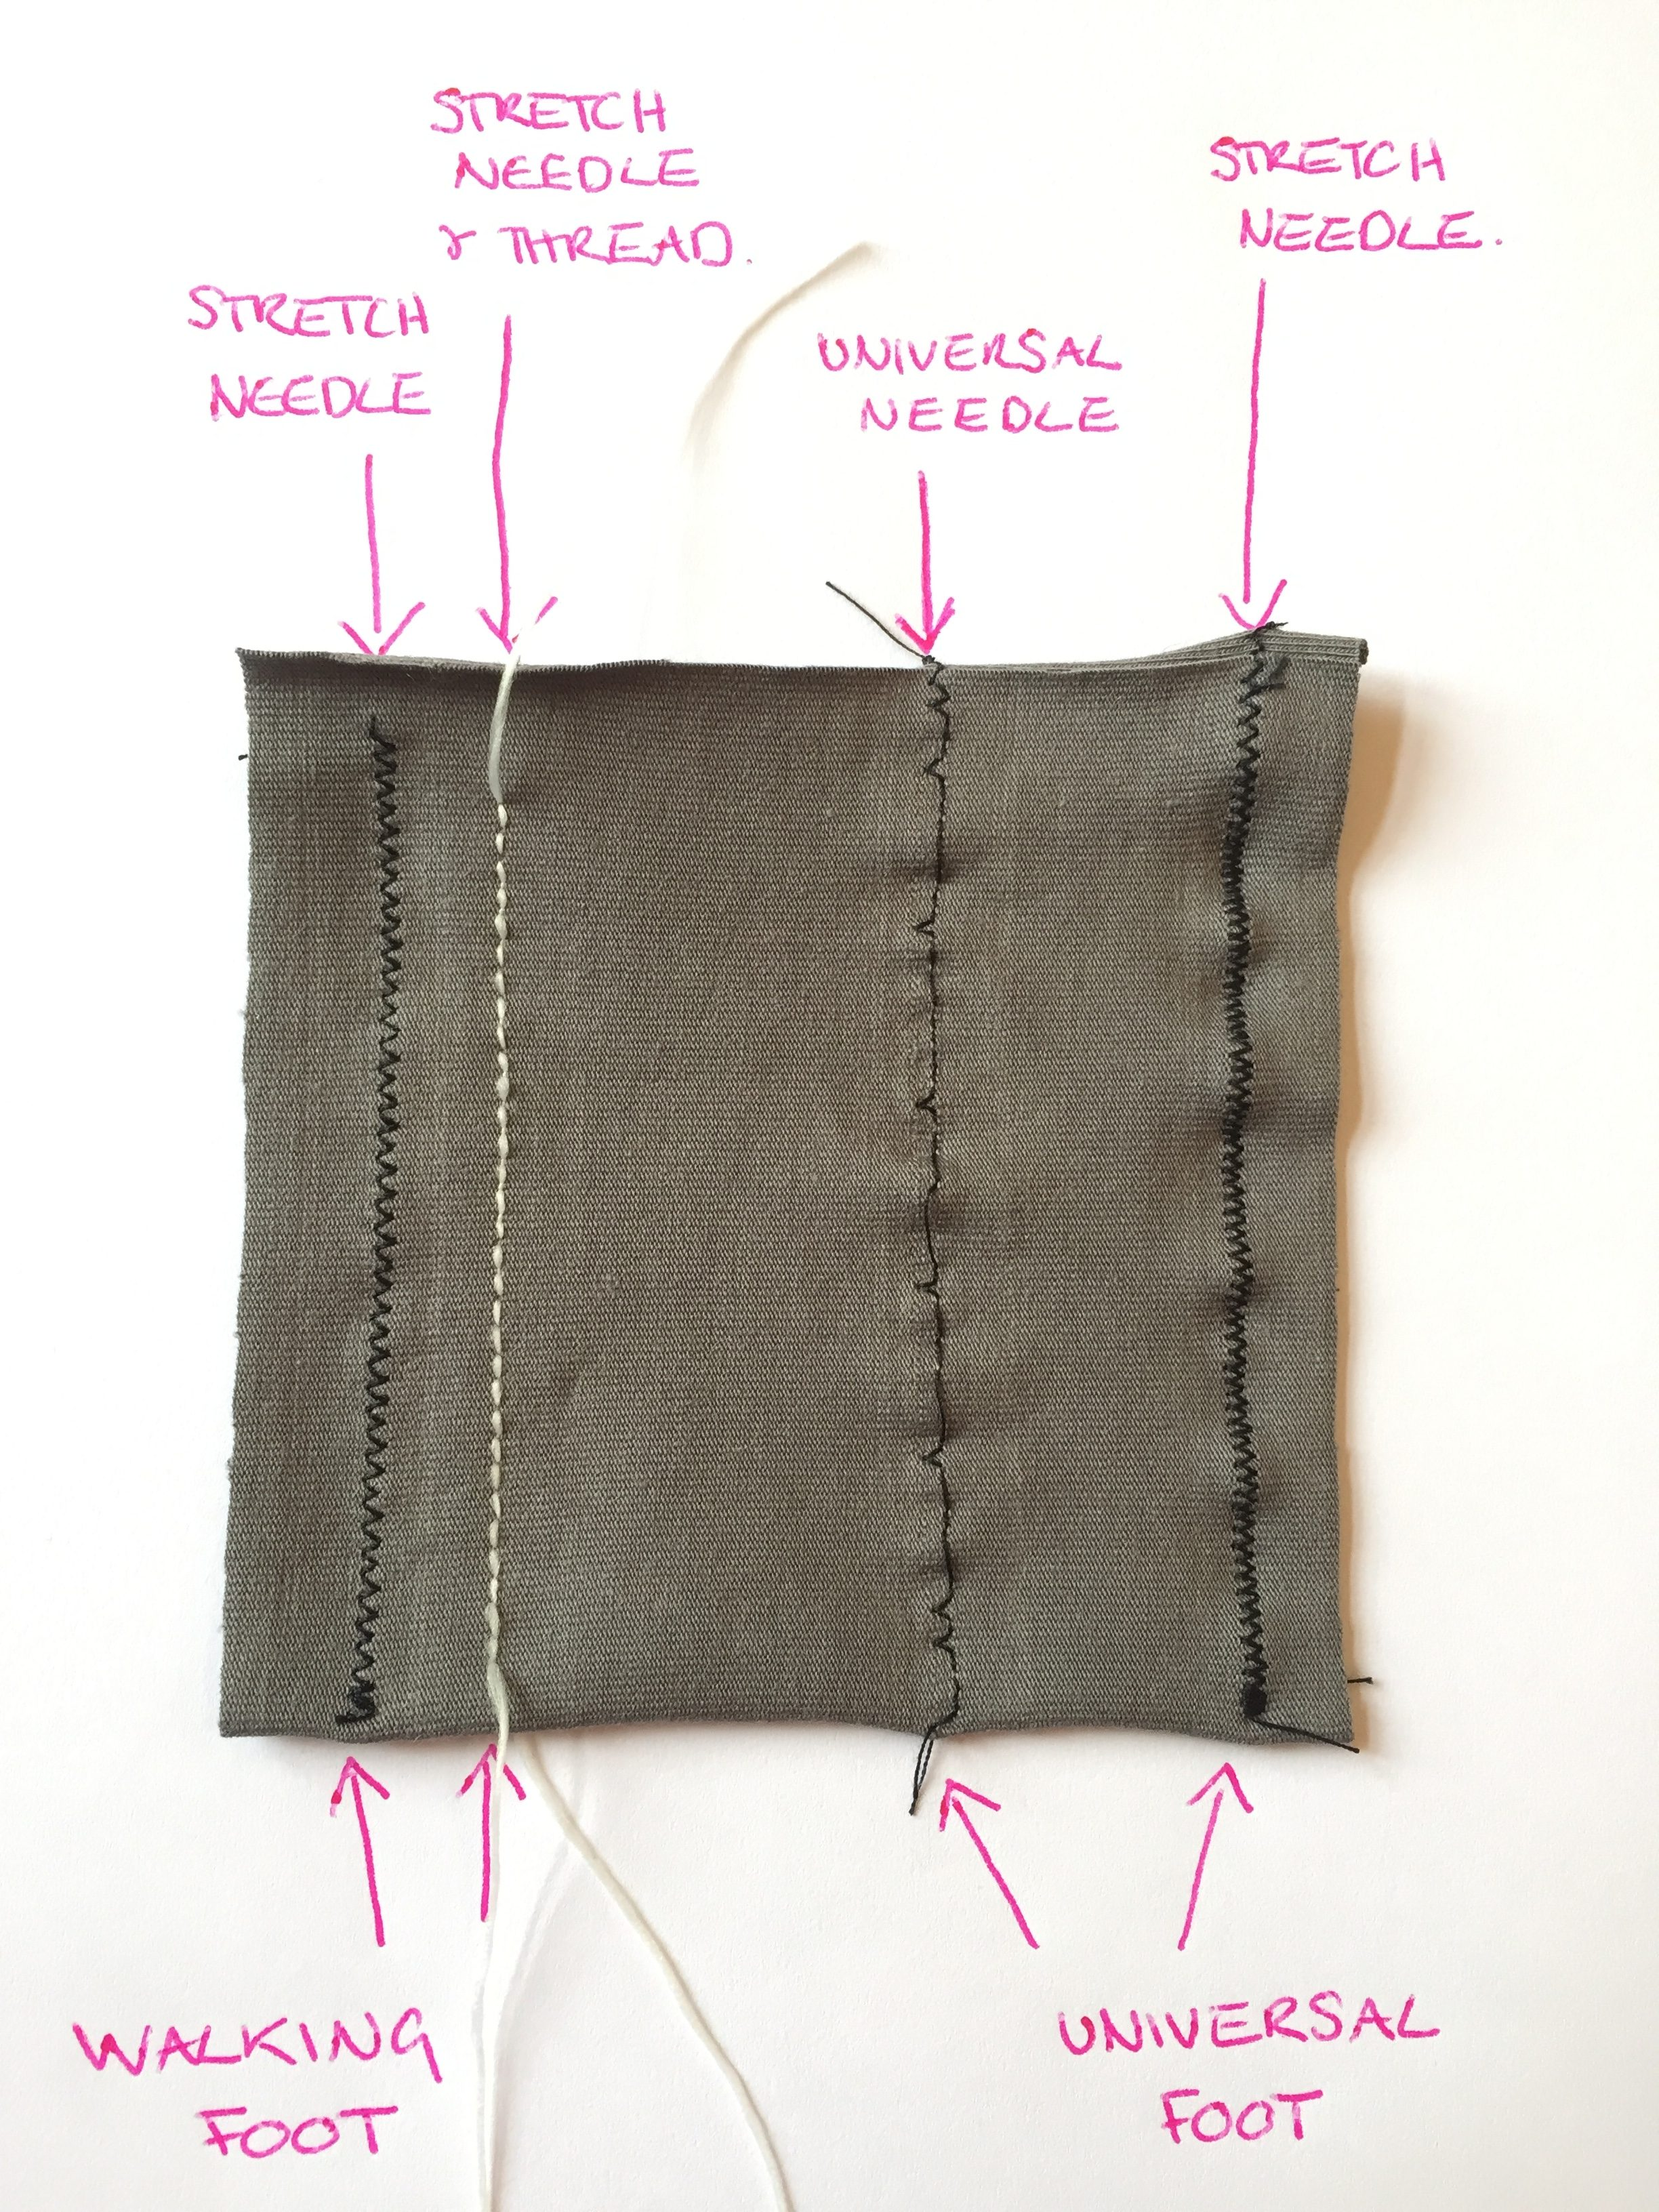 How to Sew Stretchy Fabric How to Sew Stretchy Fabric new photo